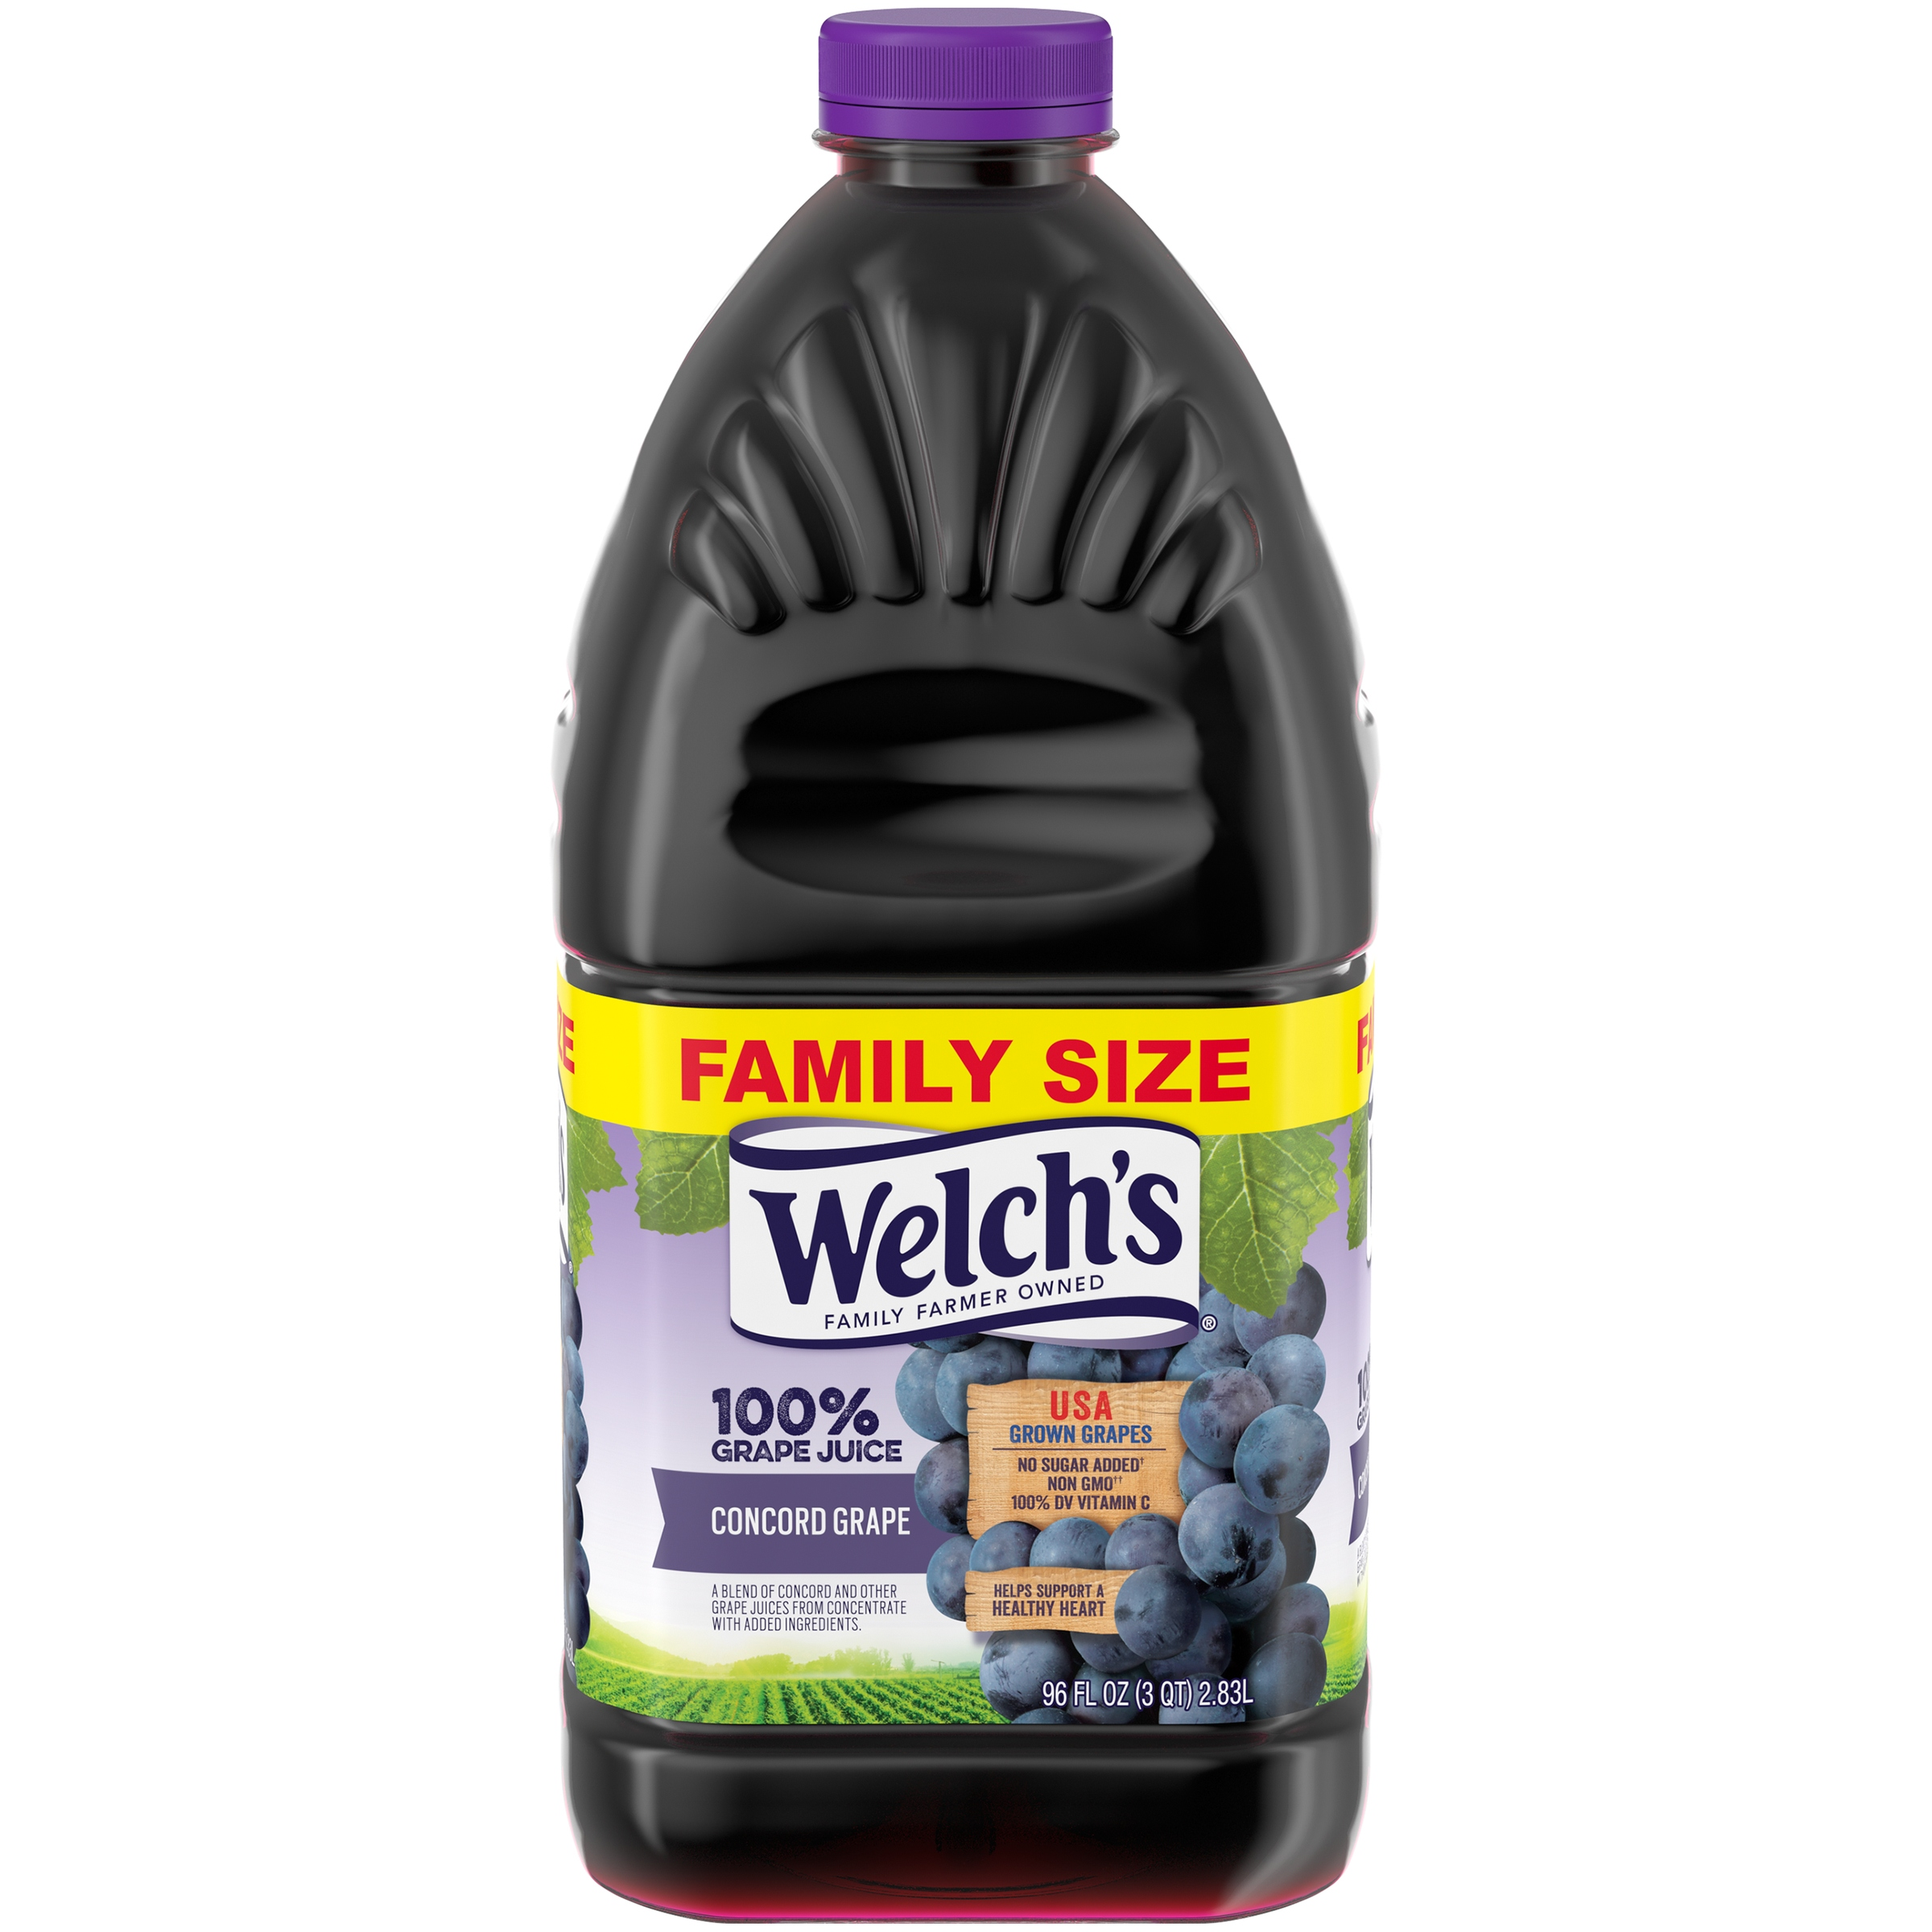 (2 pack) Welch's 100% Juice, Concord Grape, 96 Fl Oz, 1 Count